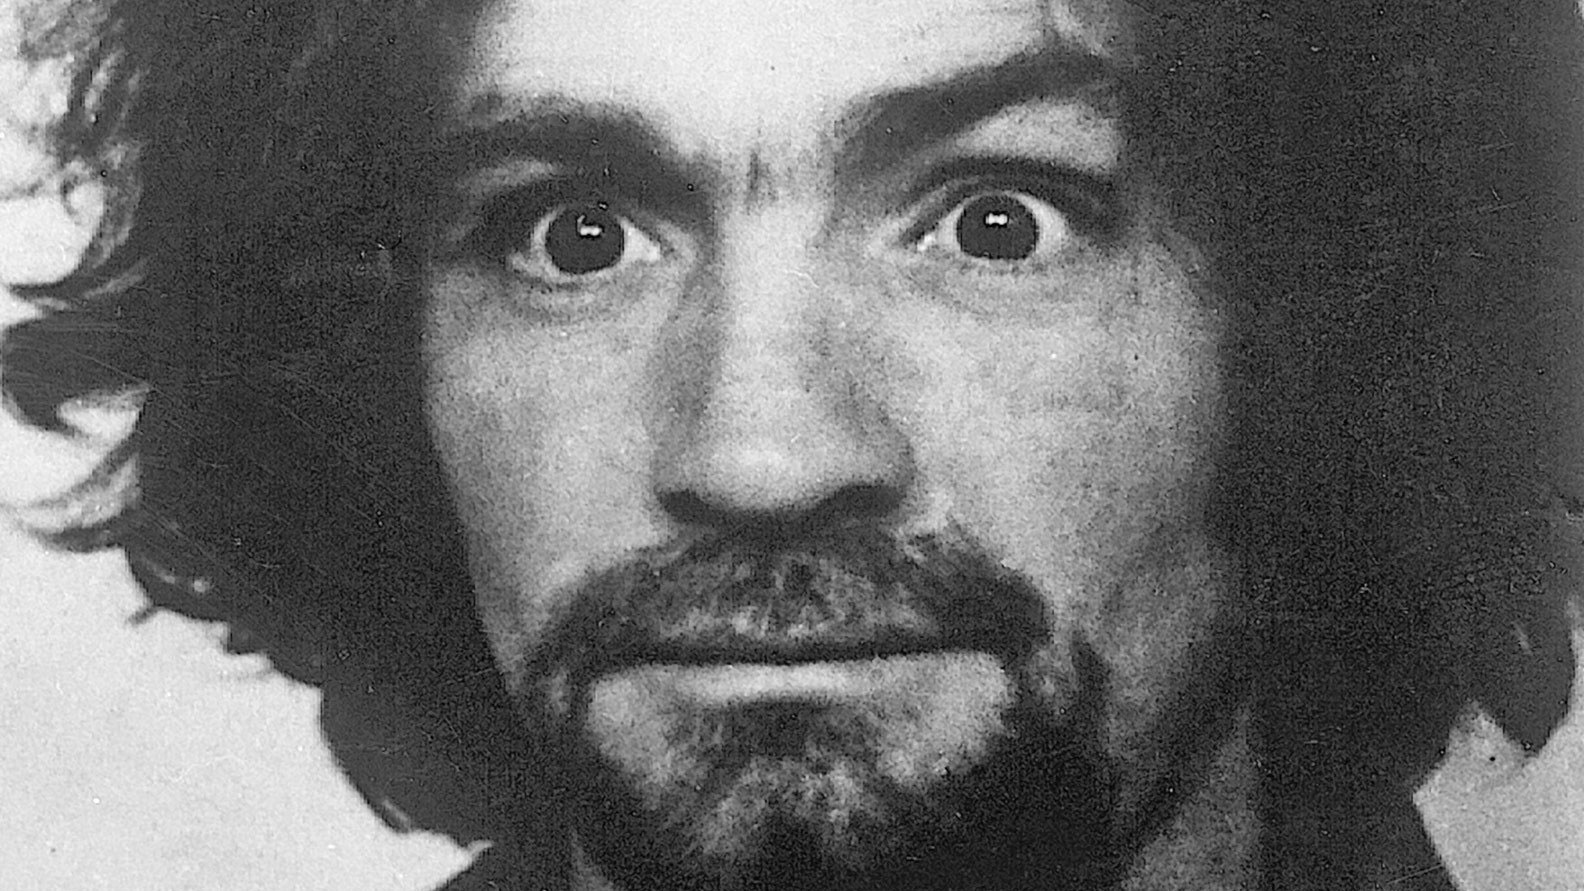 Charles Manson | Know Your Meme